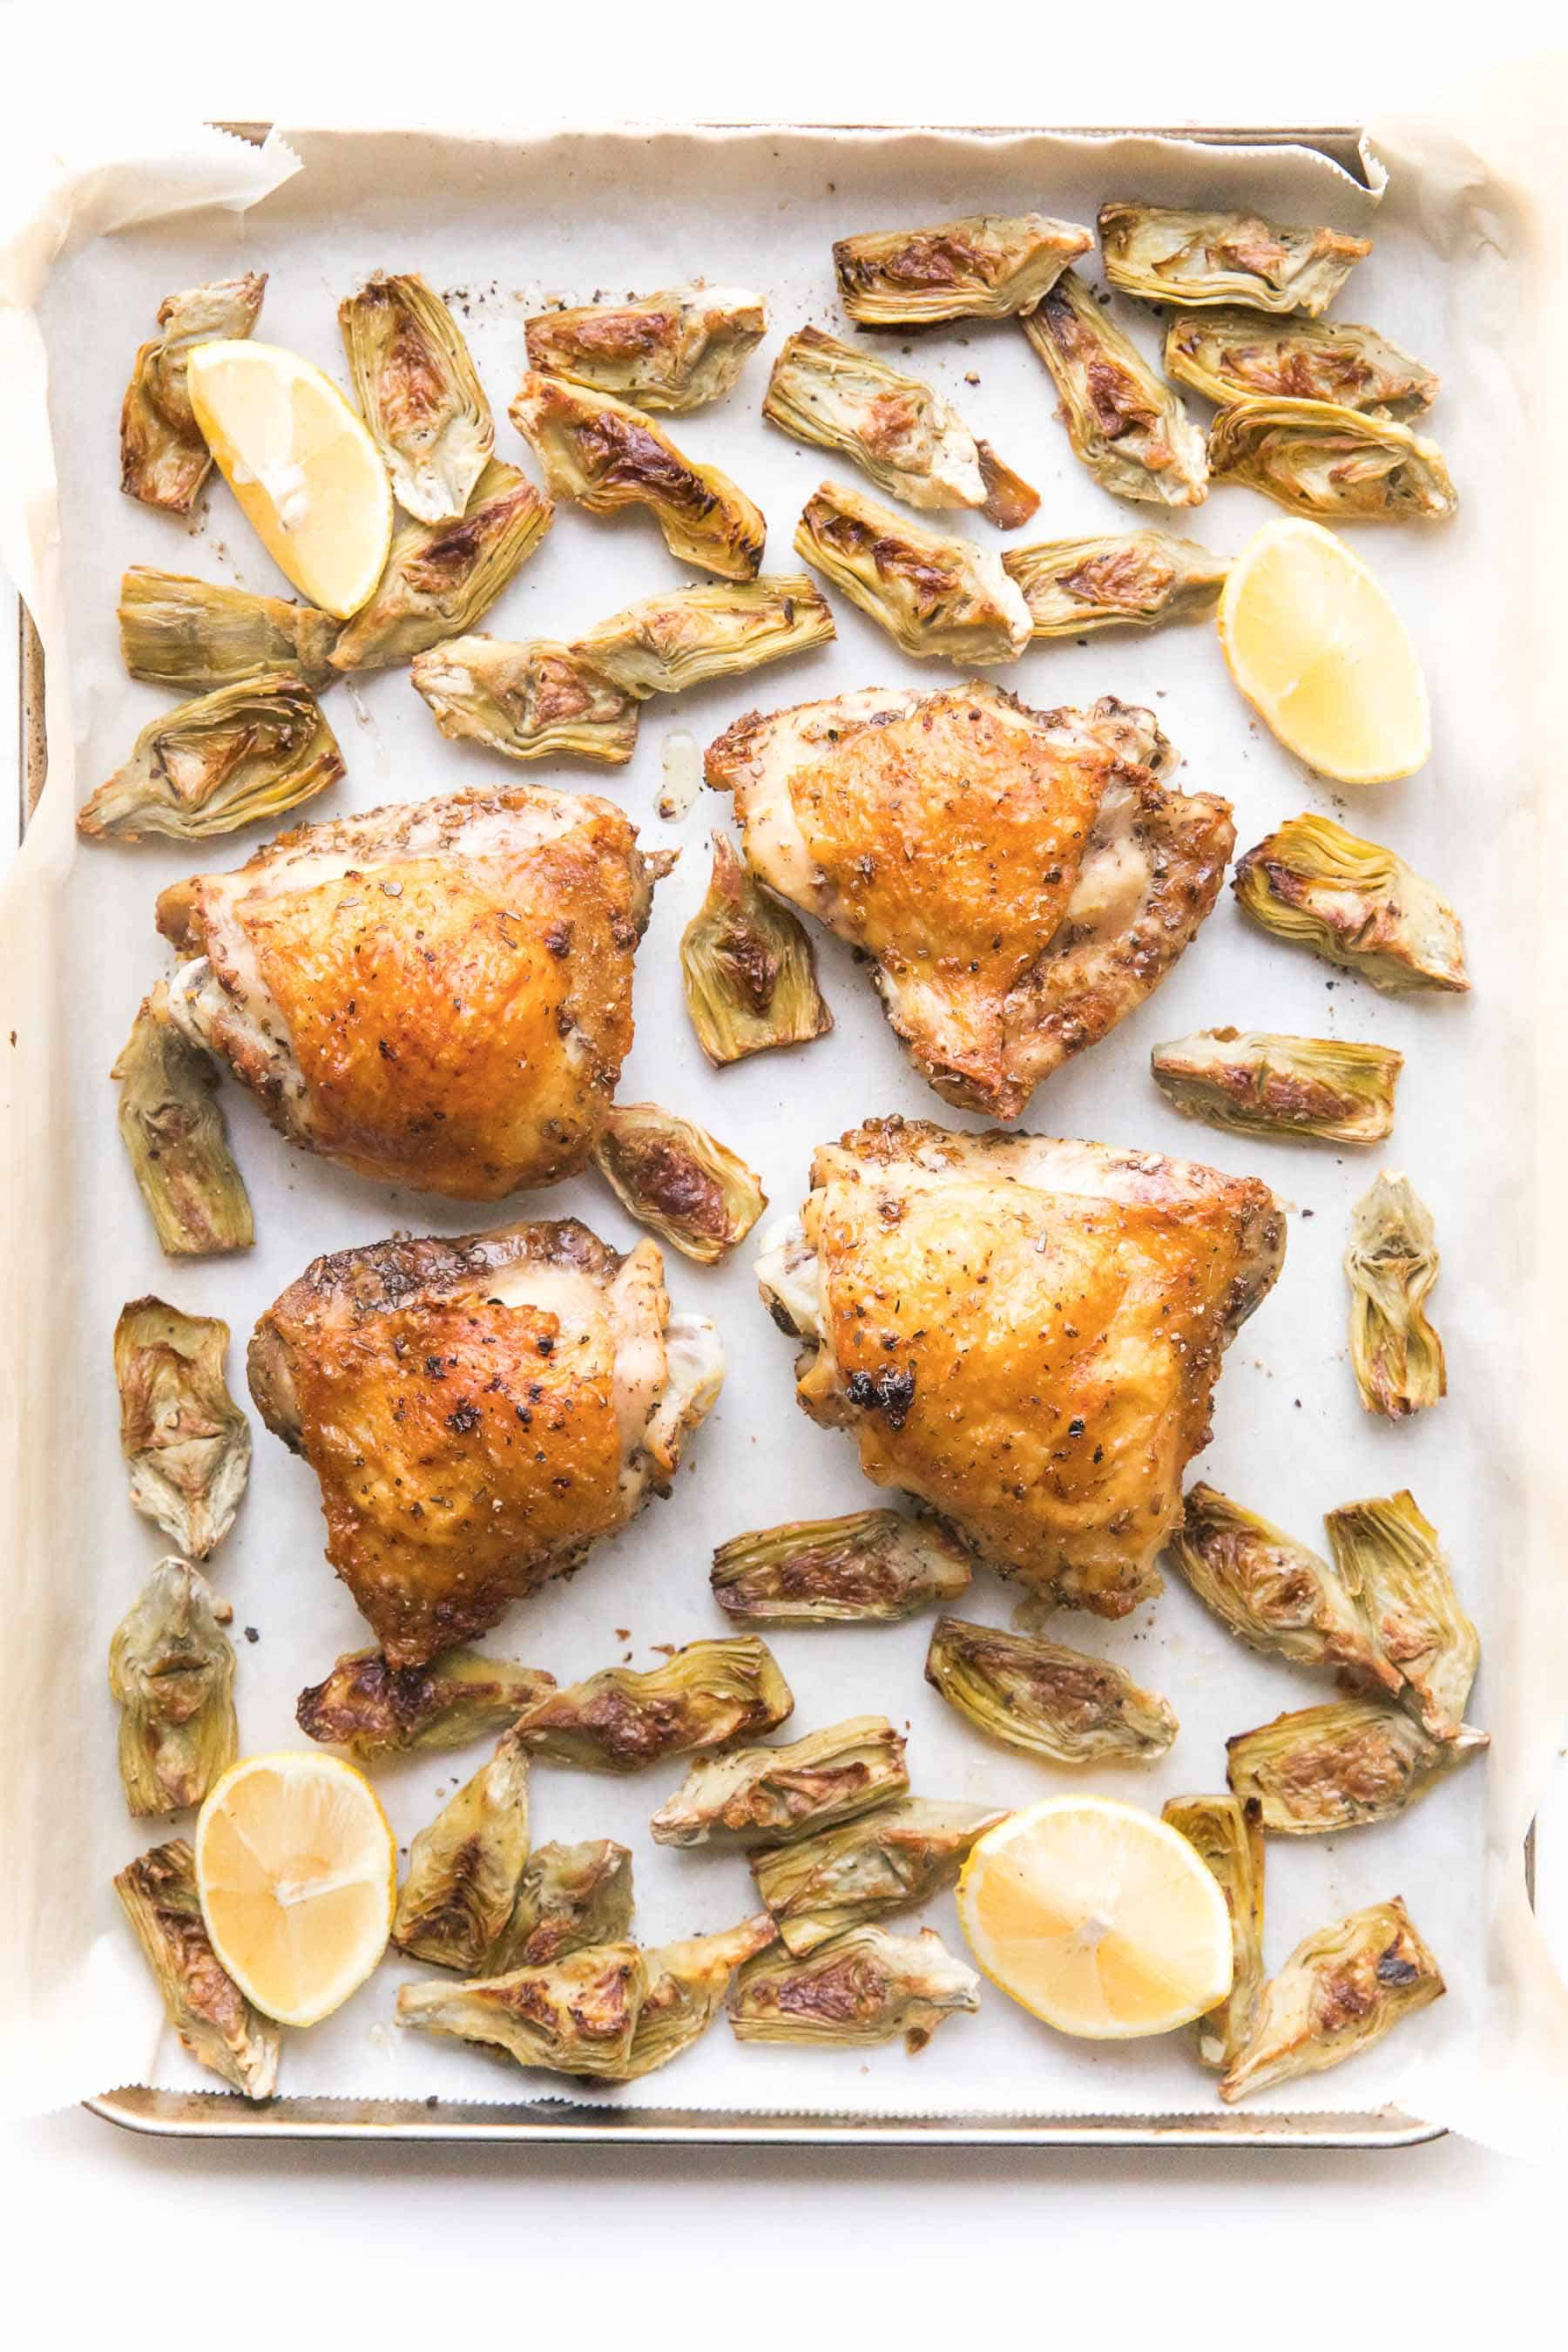 Roasted chicken and artichokes on a sheet pan